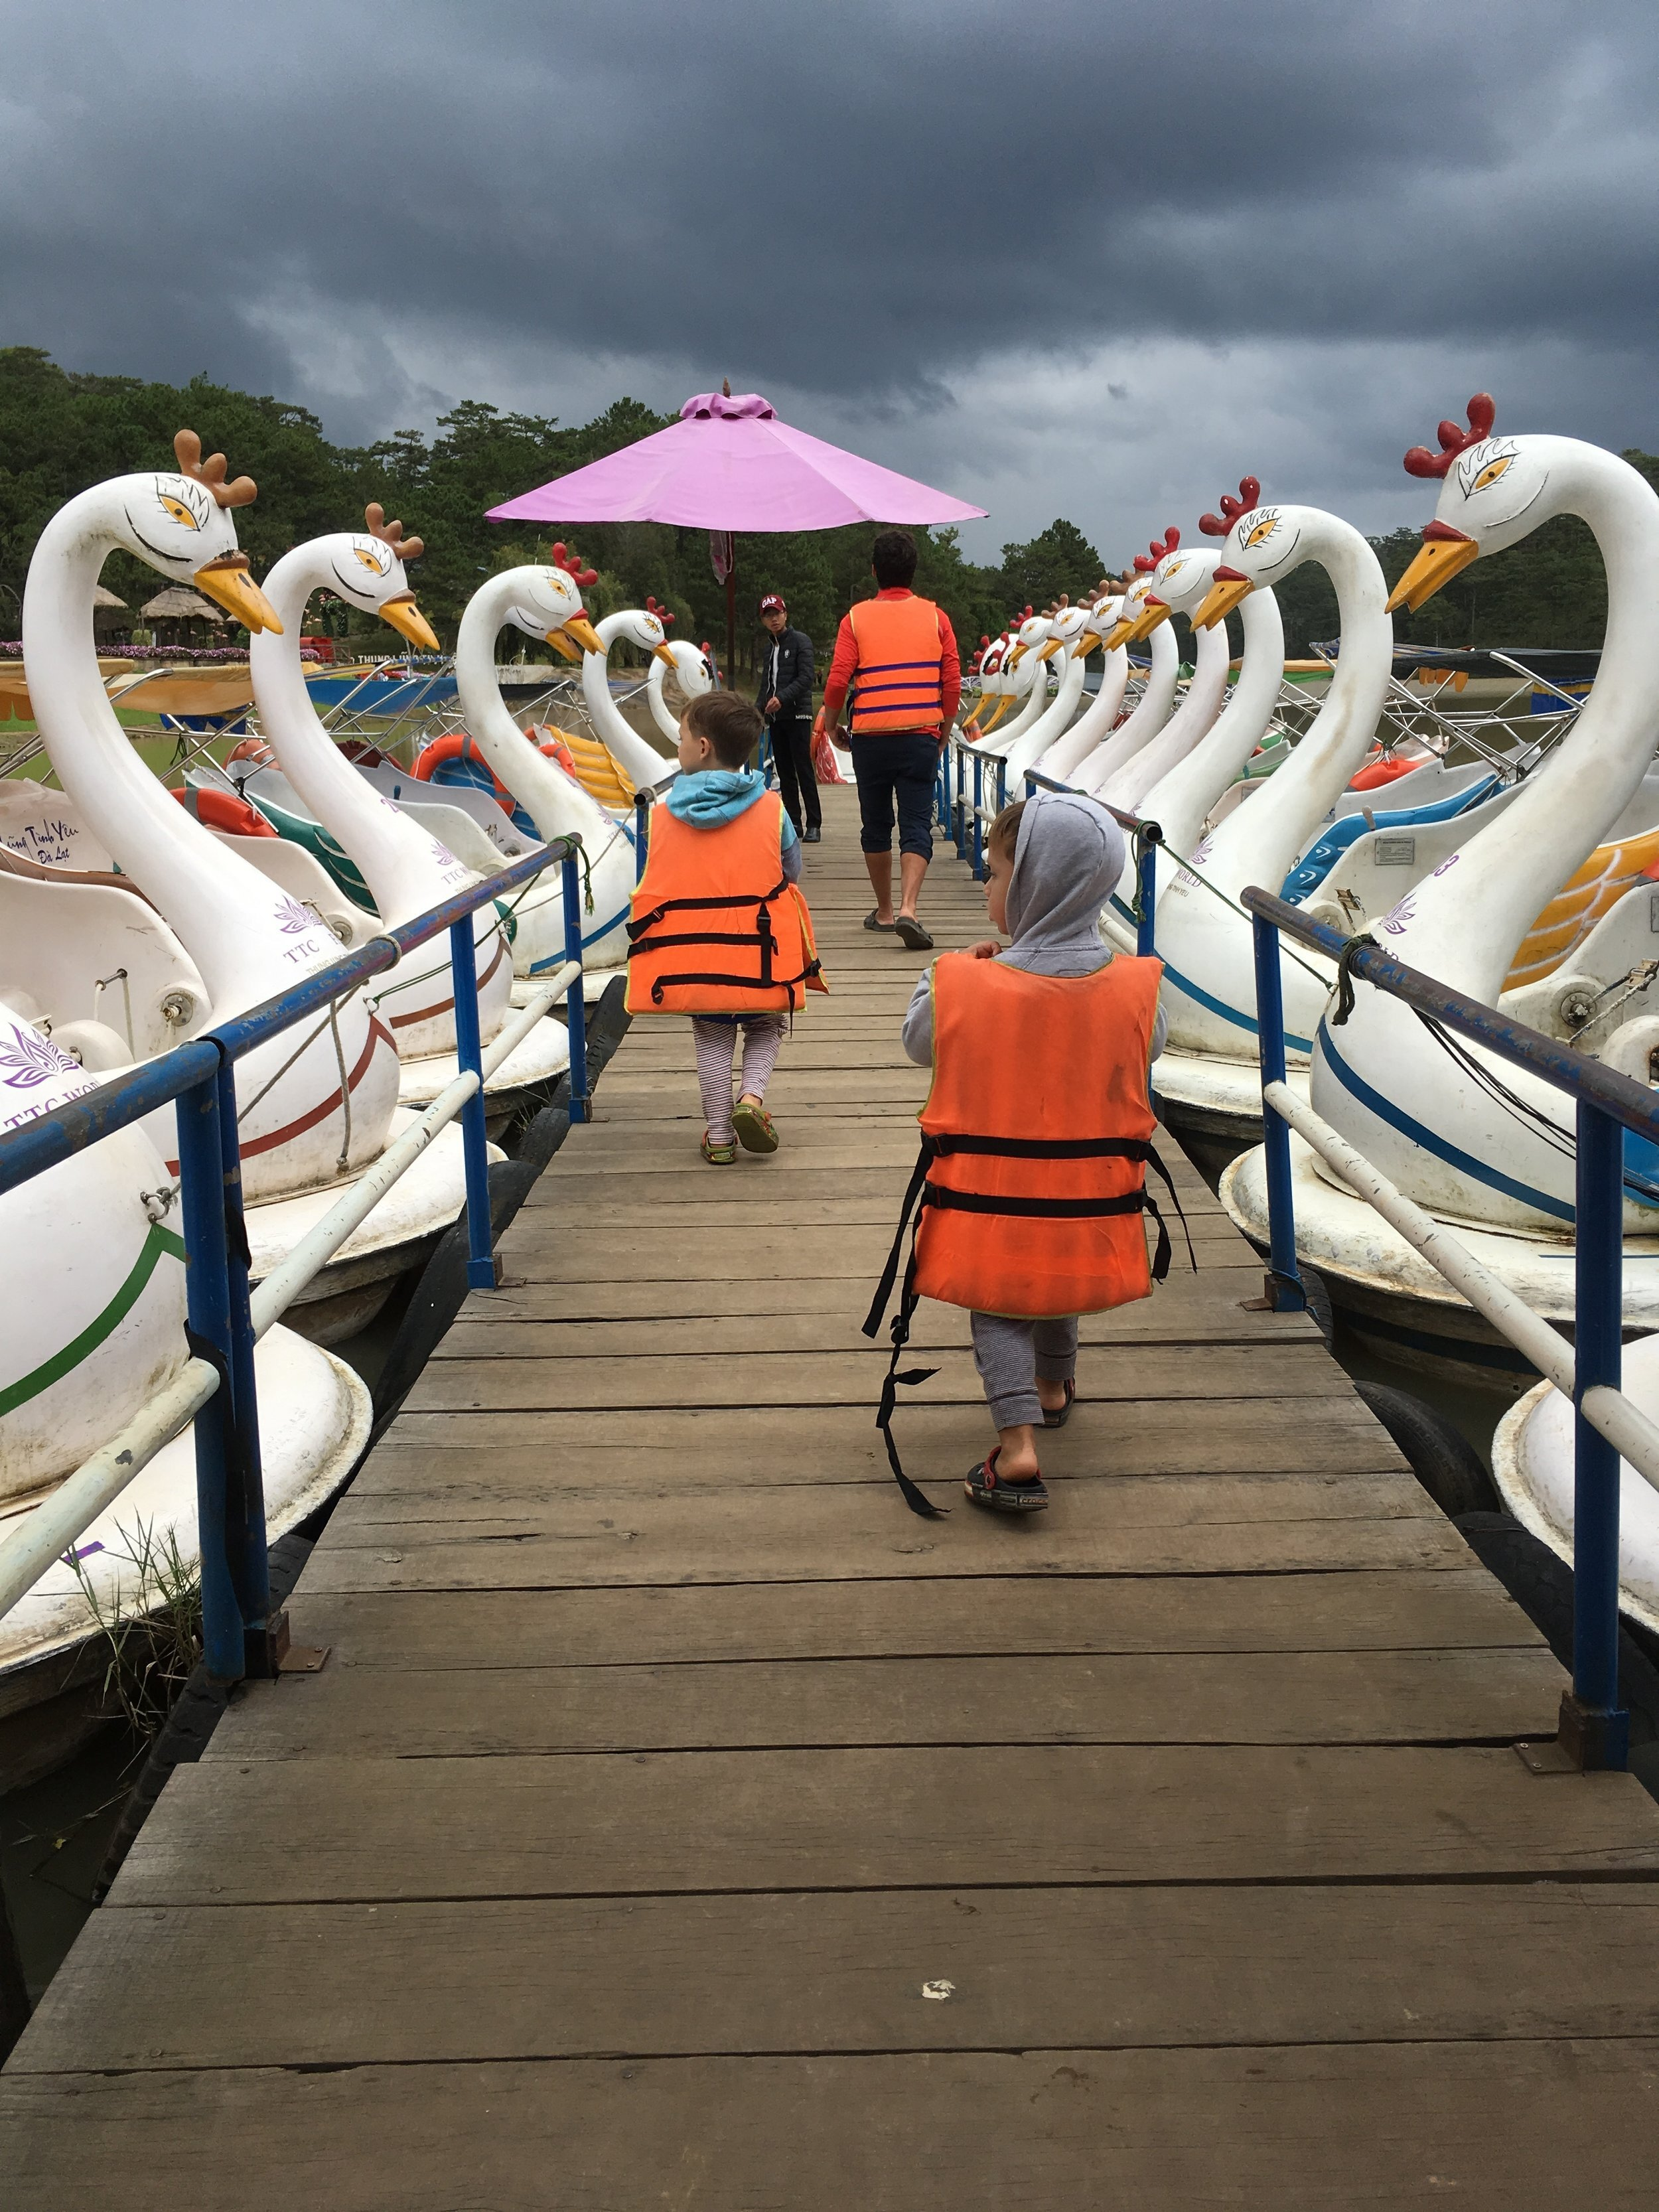 A bizarre and very fun pedal swan ride.